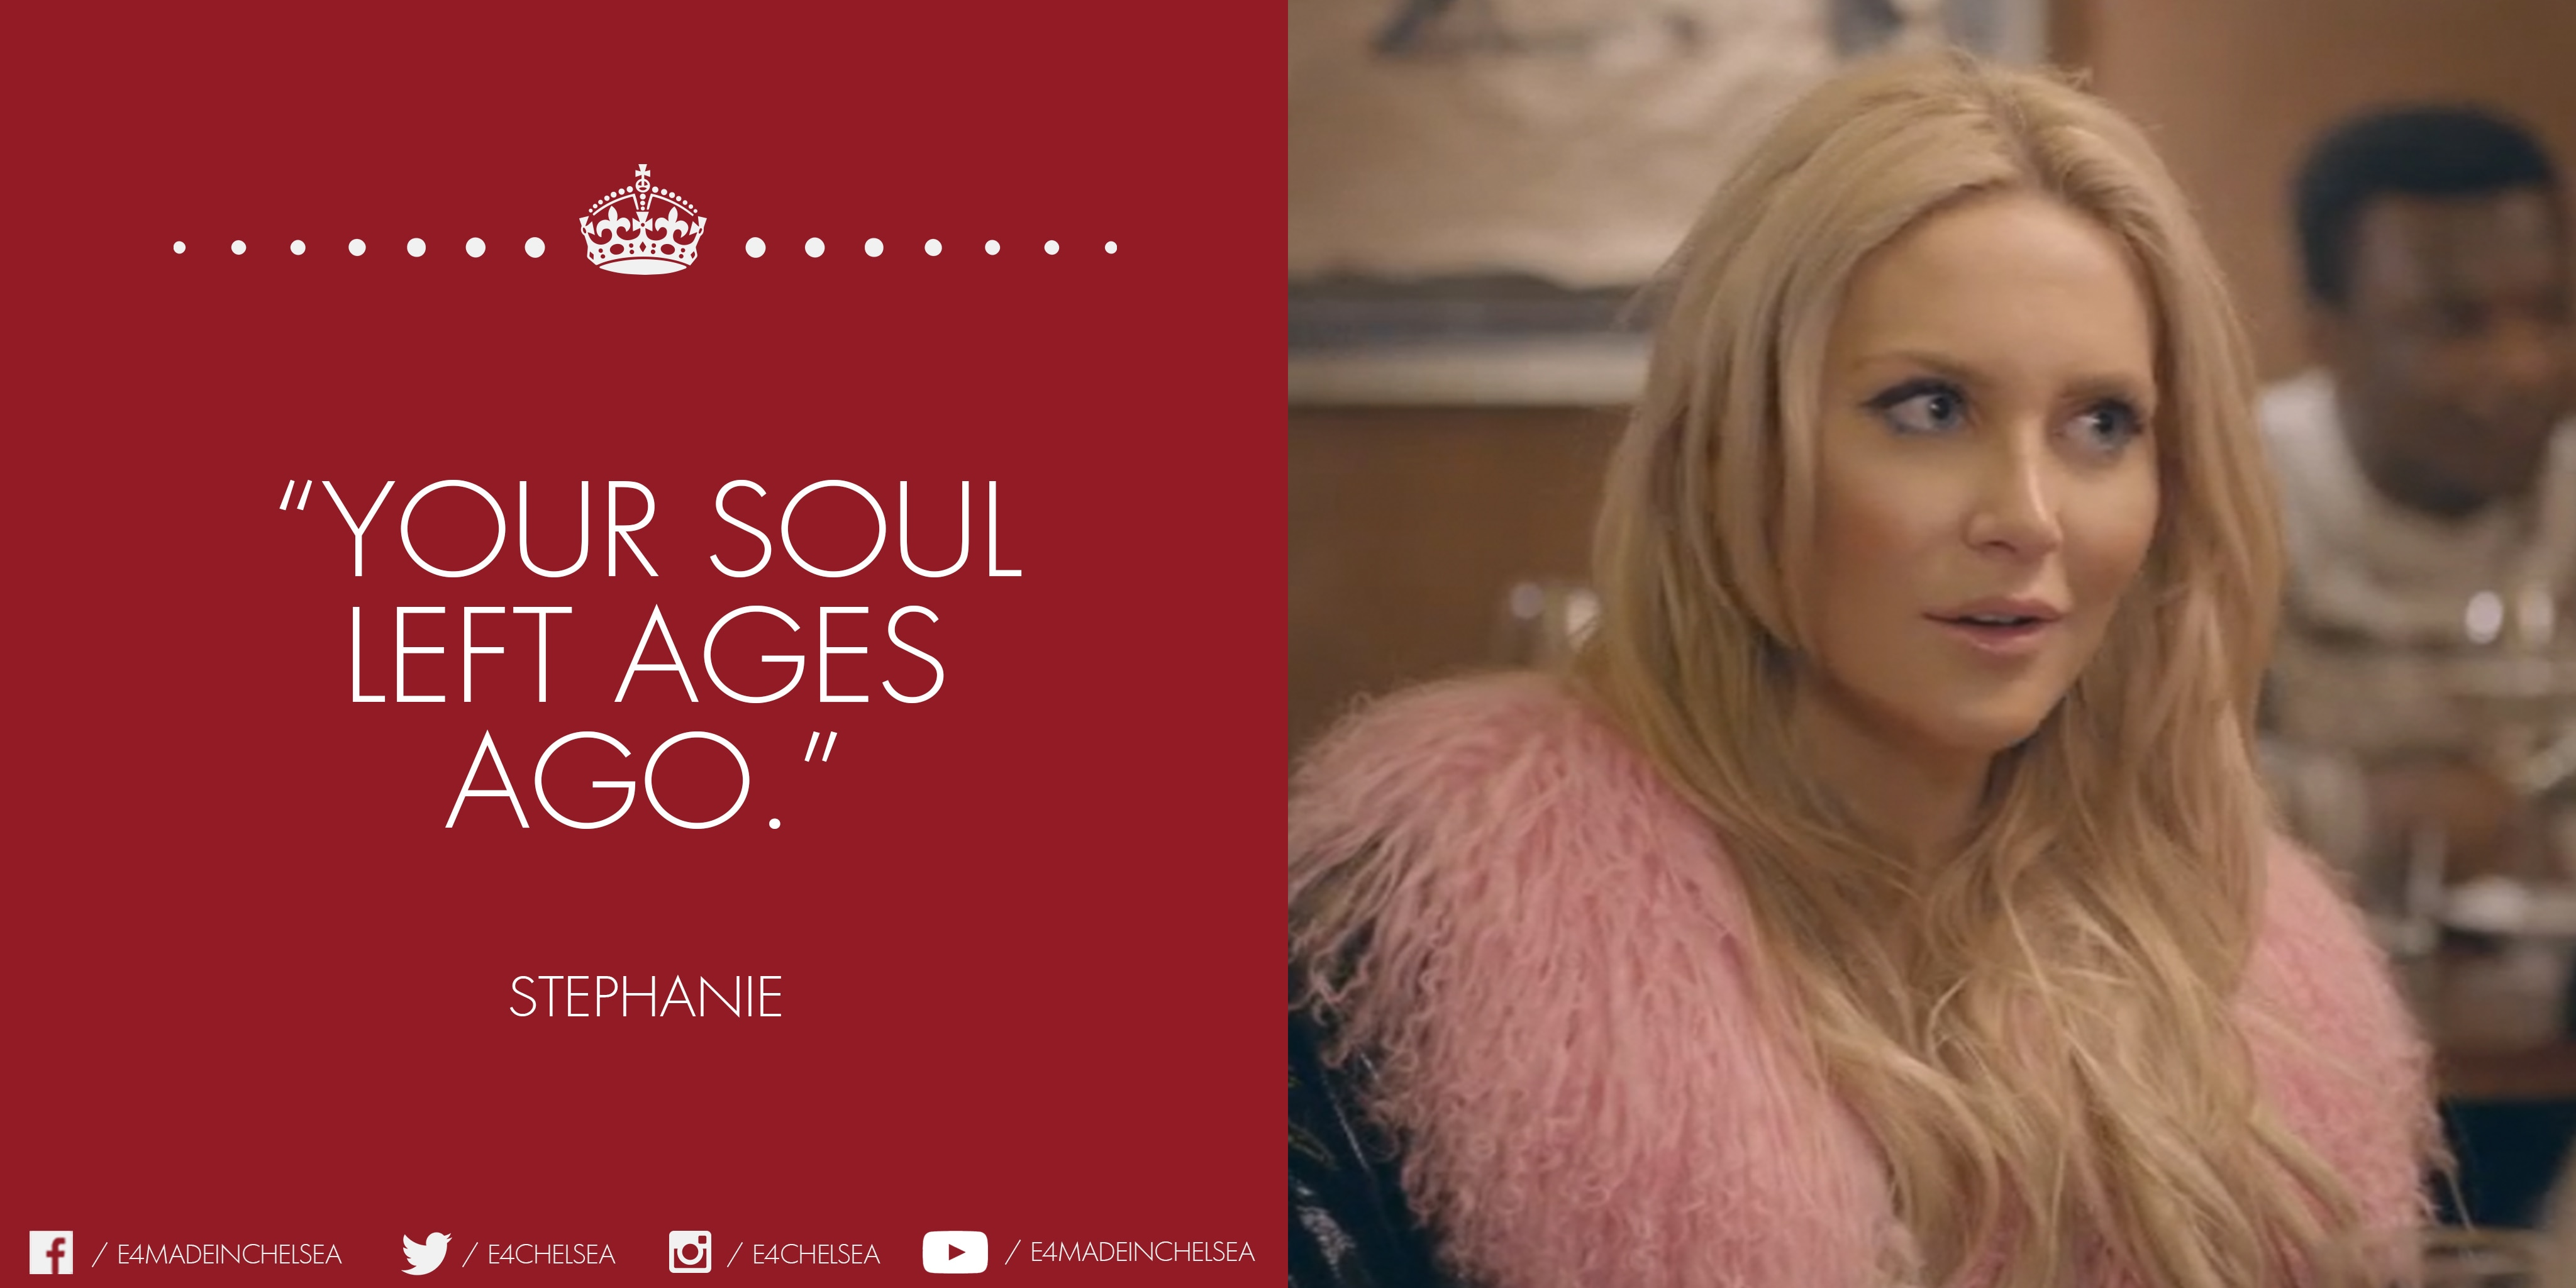 Stephanie - 'Your soul left ages ago'